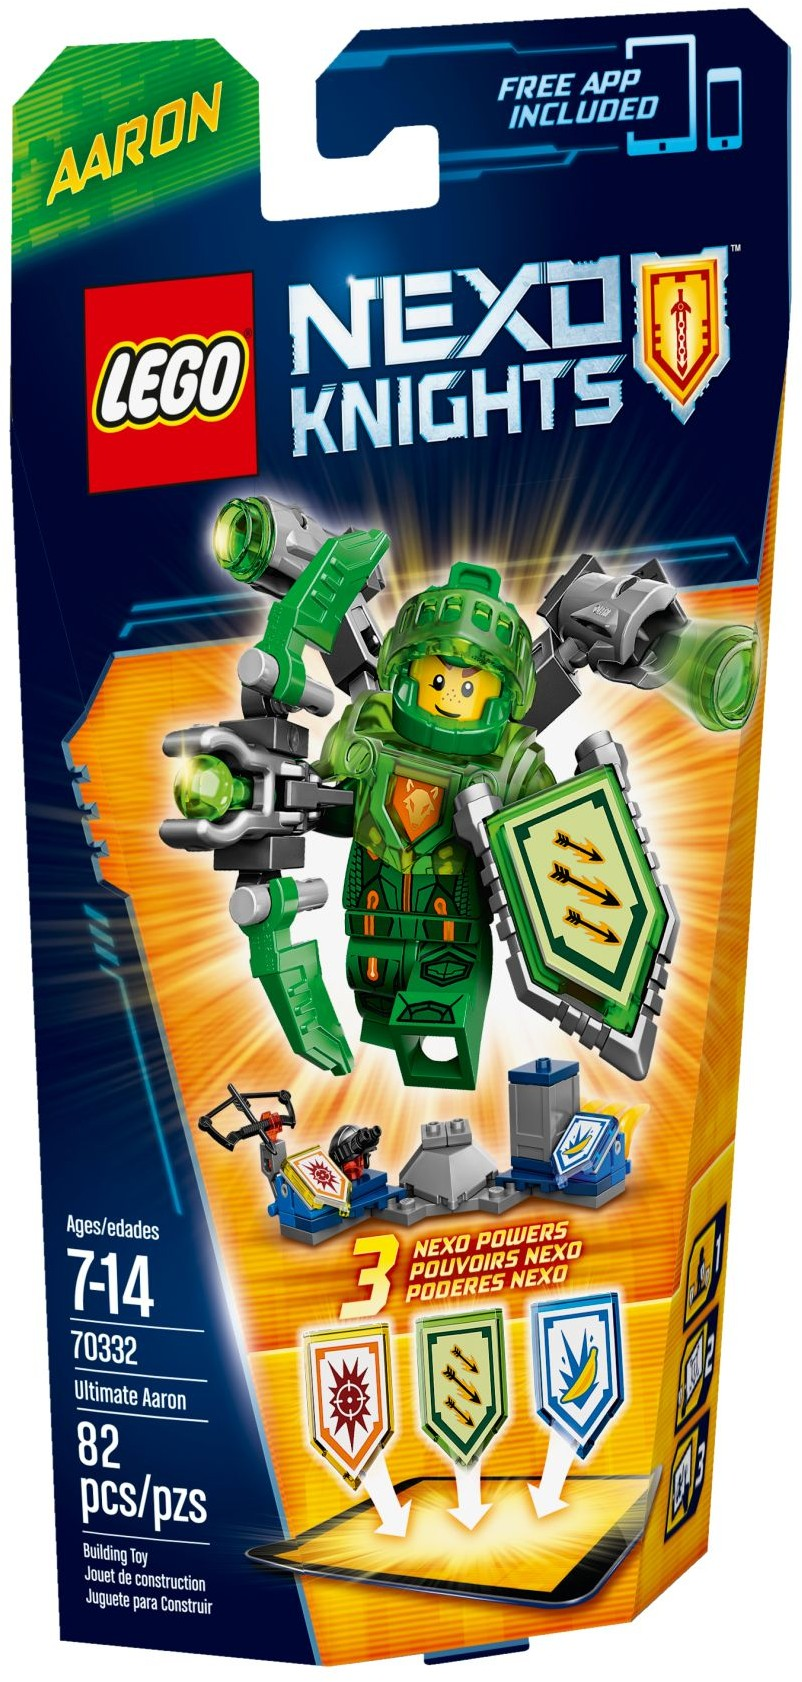 LEGO 70373 Nexo Knights Collectable NEXO Powers SEALED and NEW